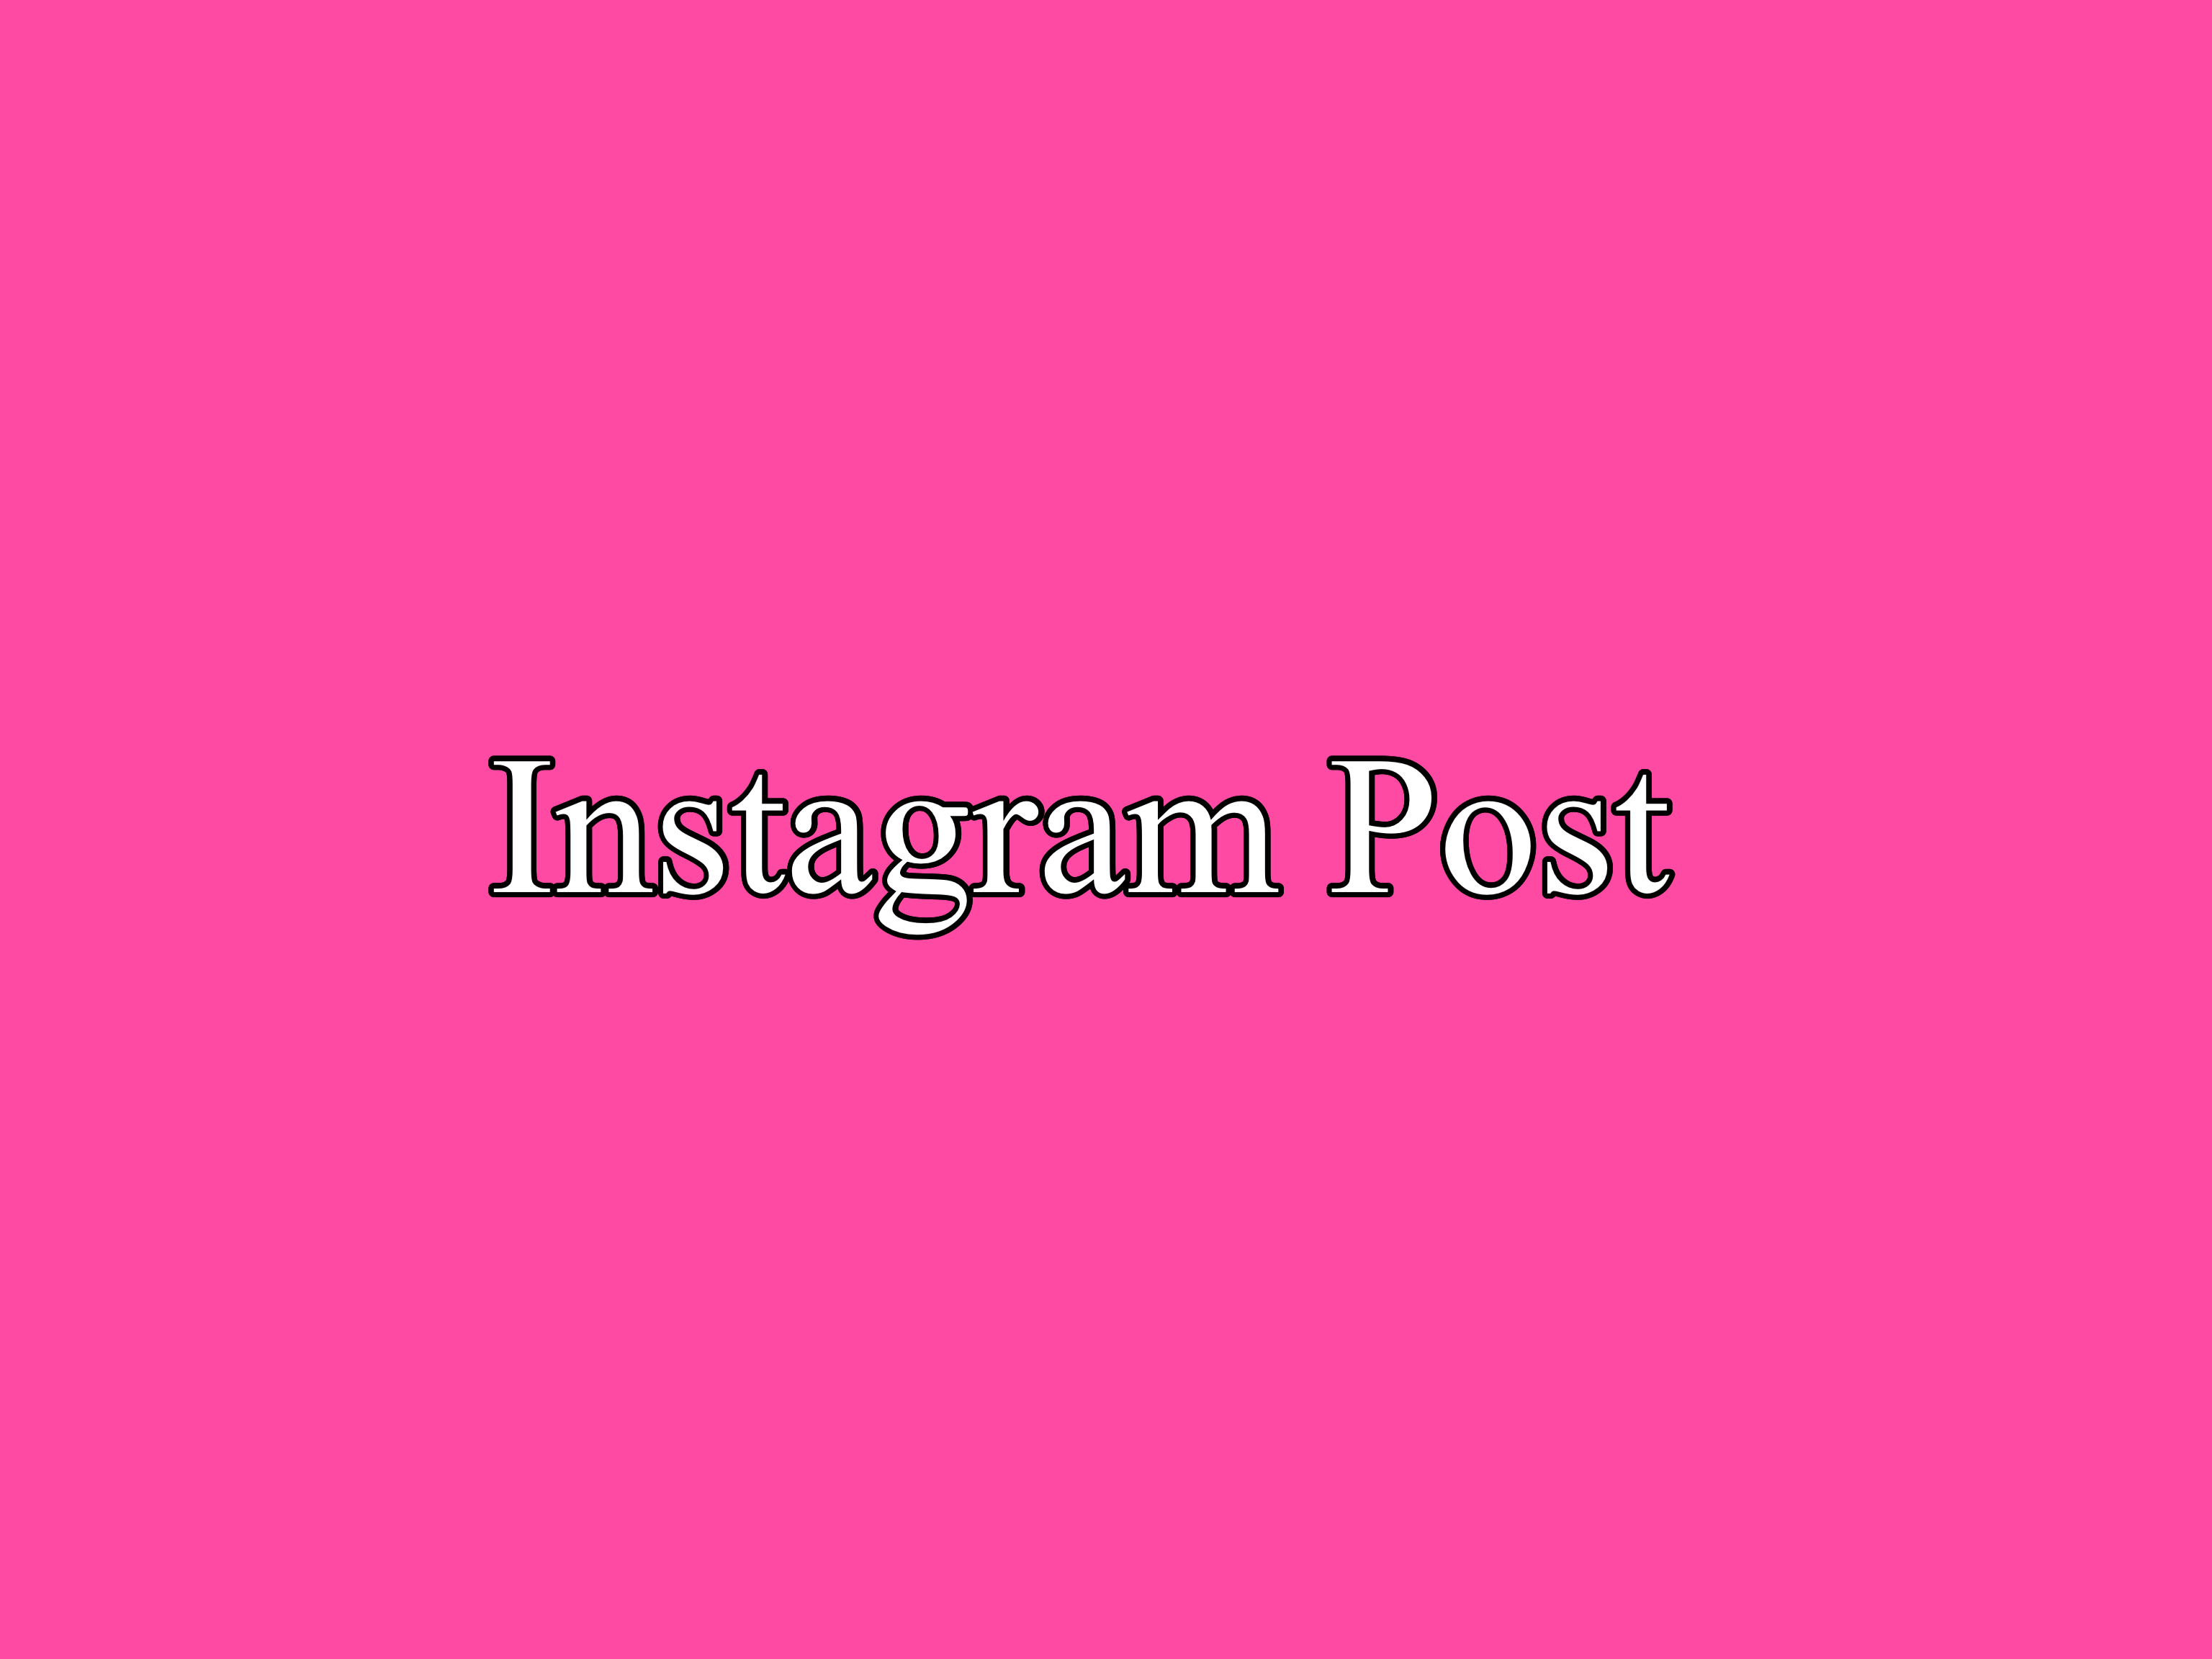 Post About your product and services on Instagram